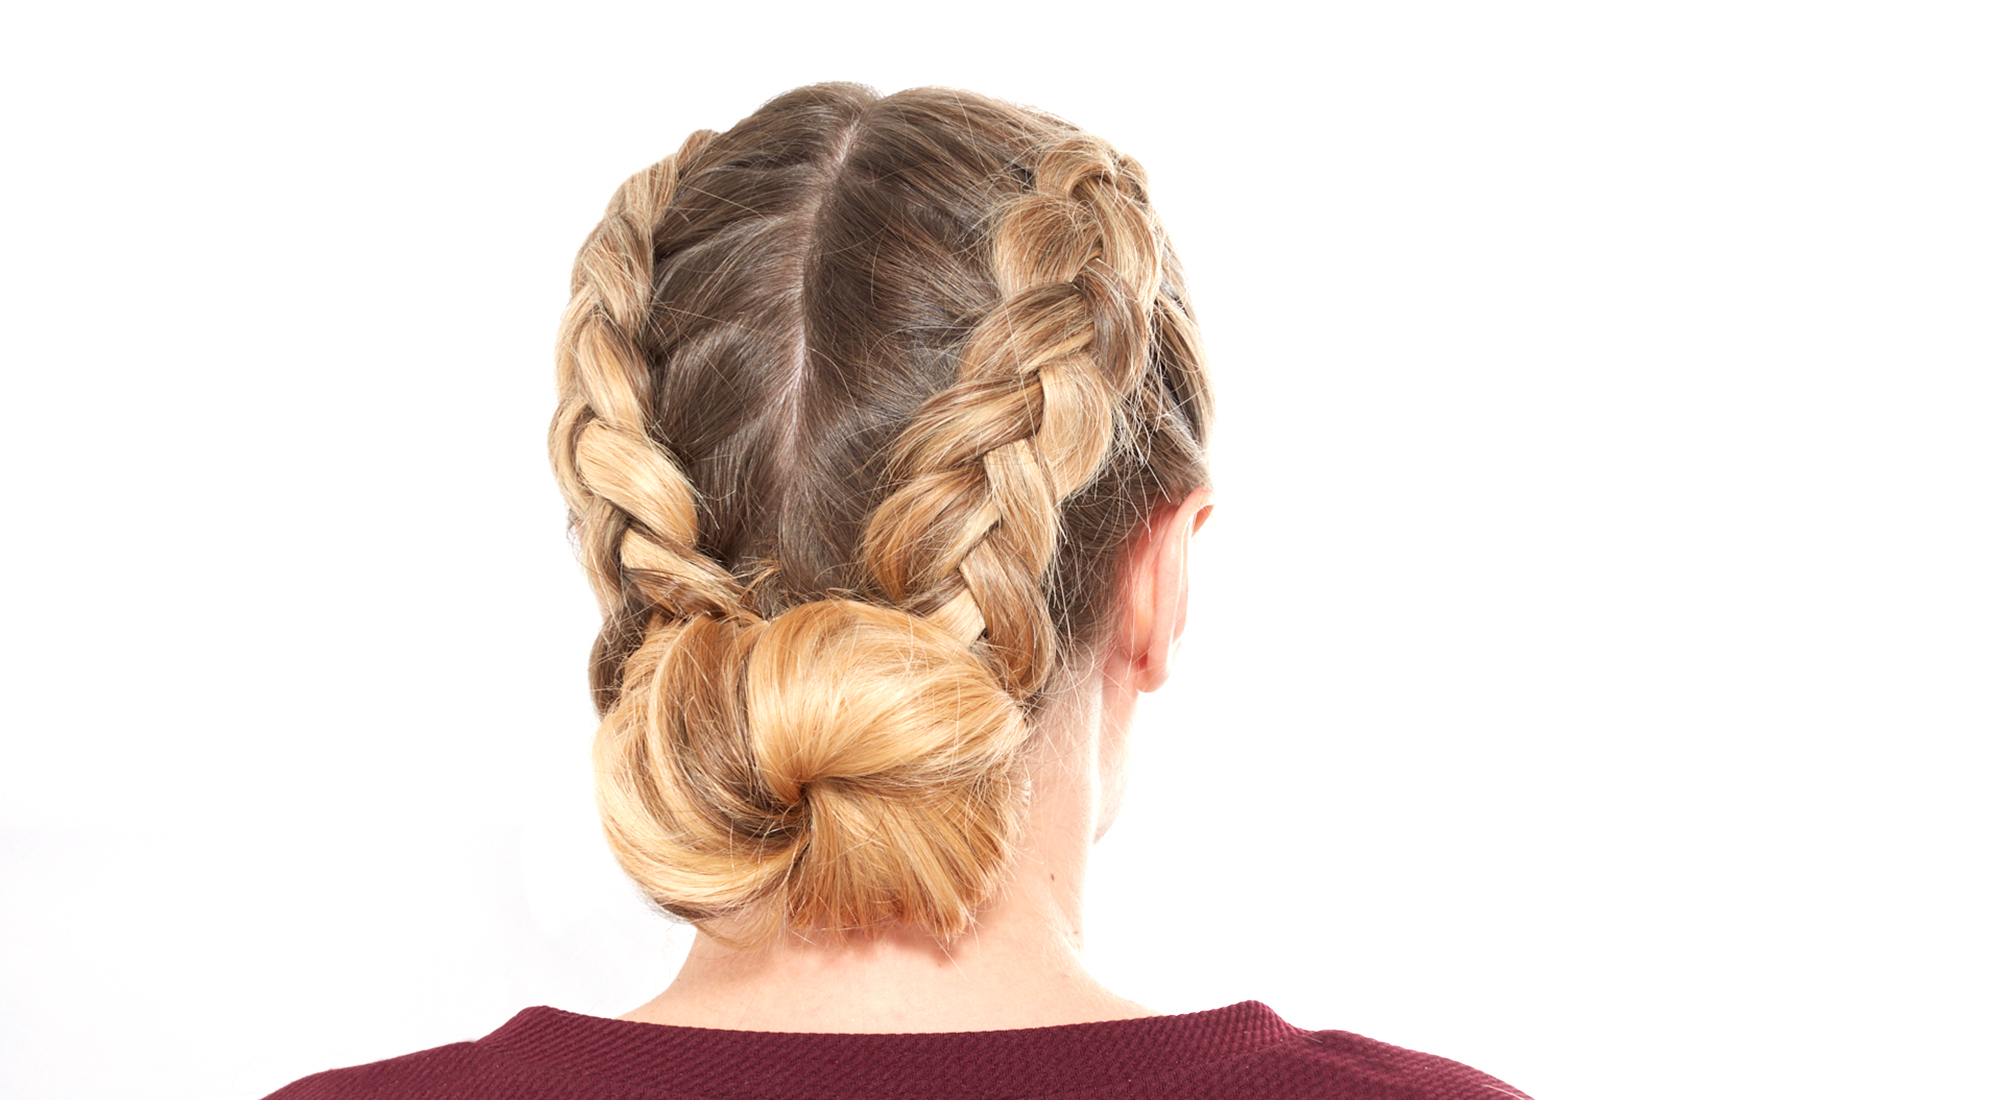 Blow Ltd Pertaining To Most Up To Date Dutch Braid Bun Hairstyles (View 10 of 20)